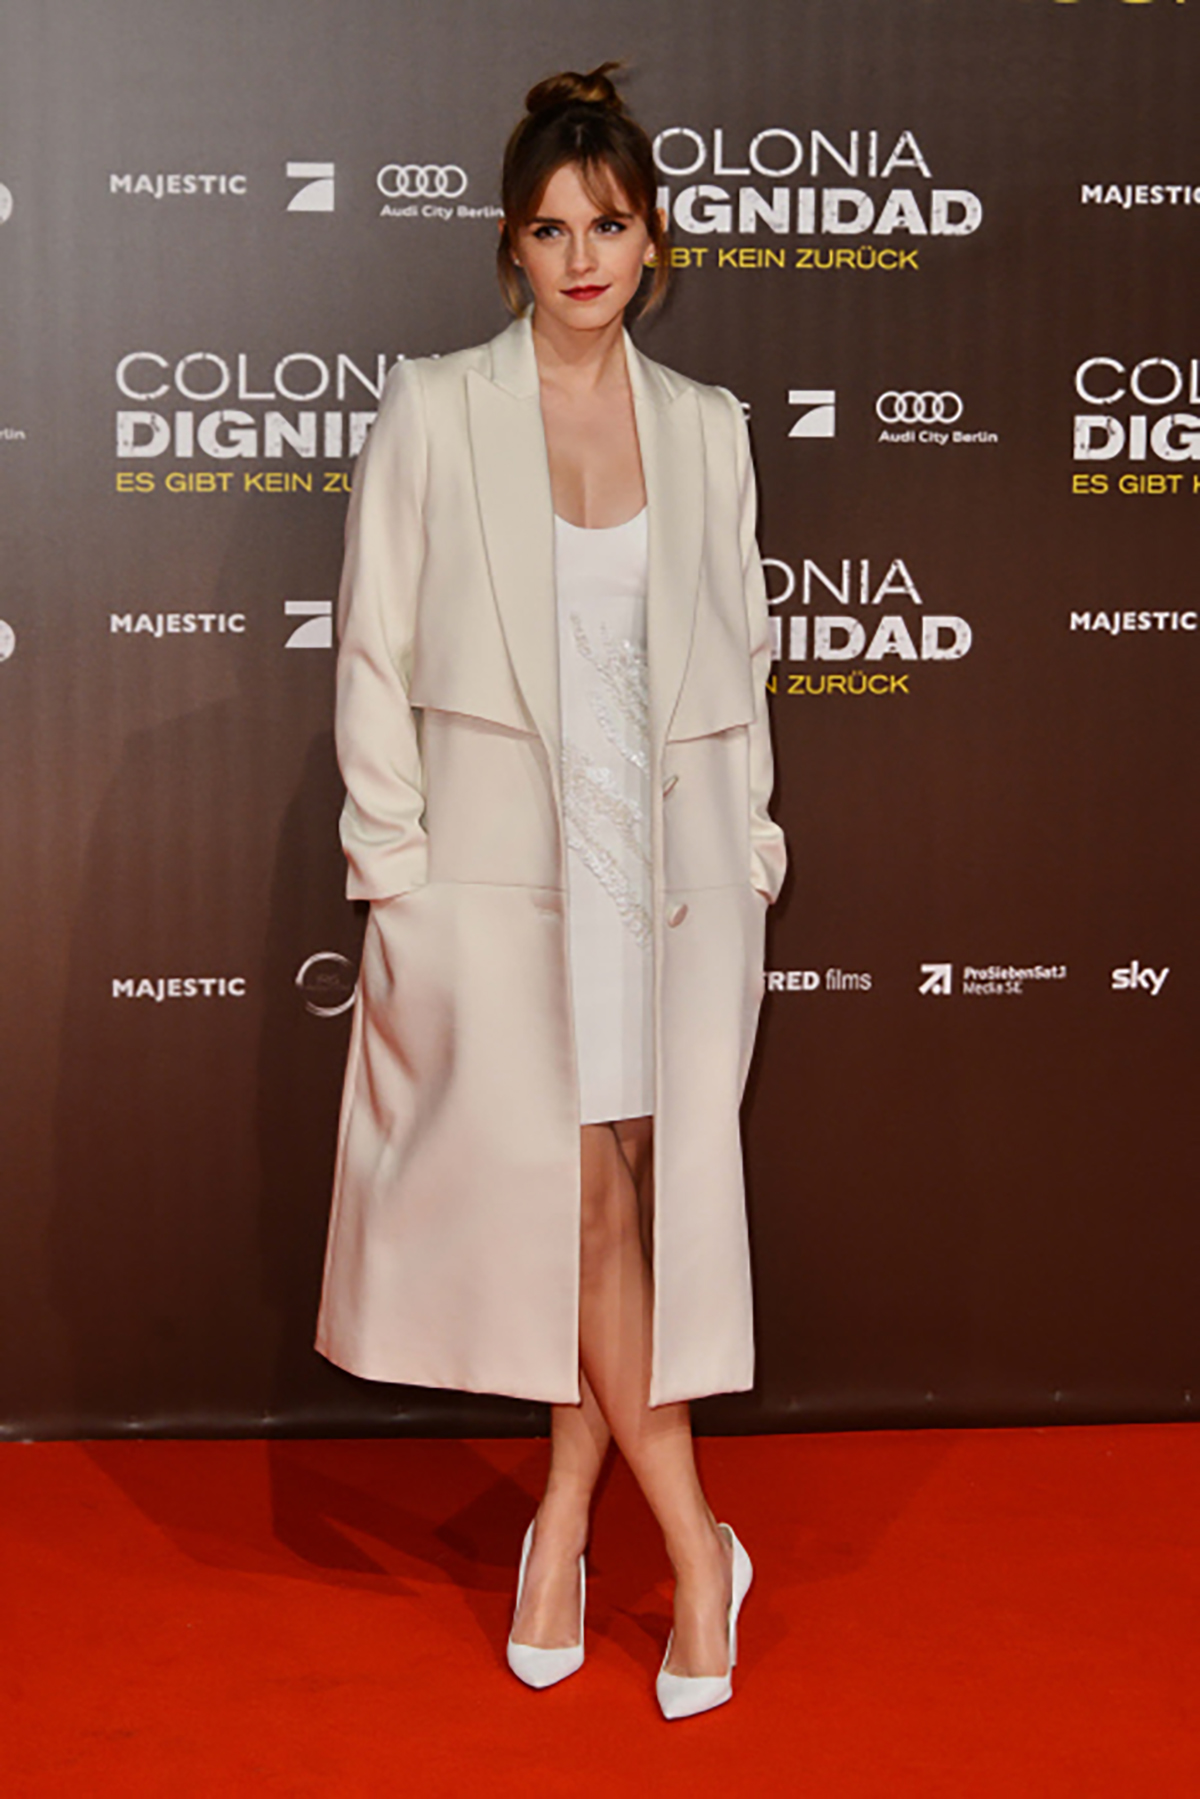 12. Actress Emma Watson during premier  Colonia Dignidad en berlin. Sencilla y perfecta